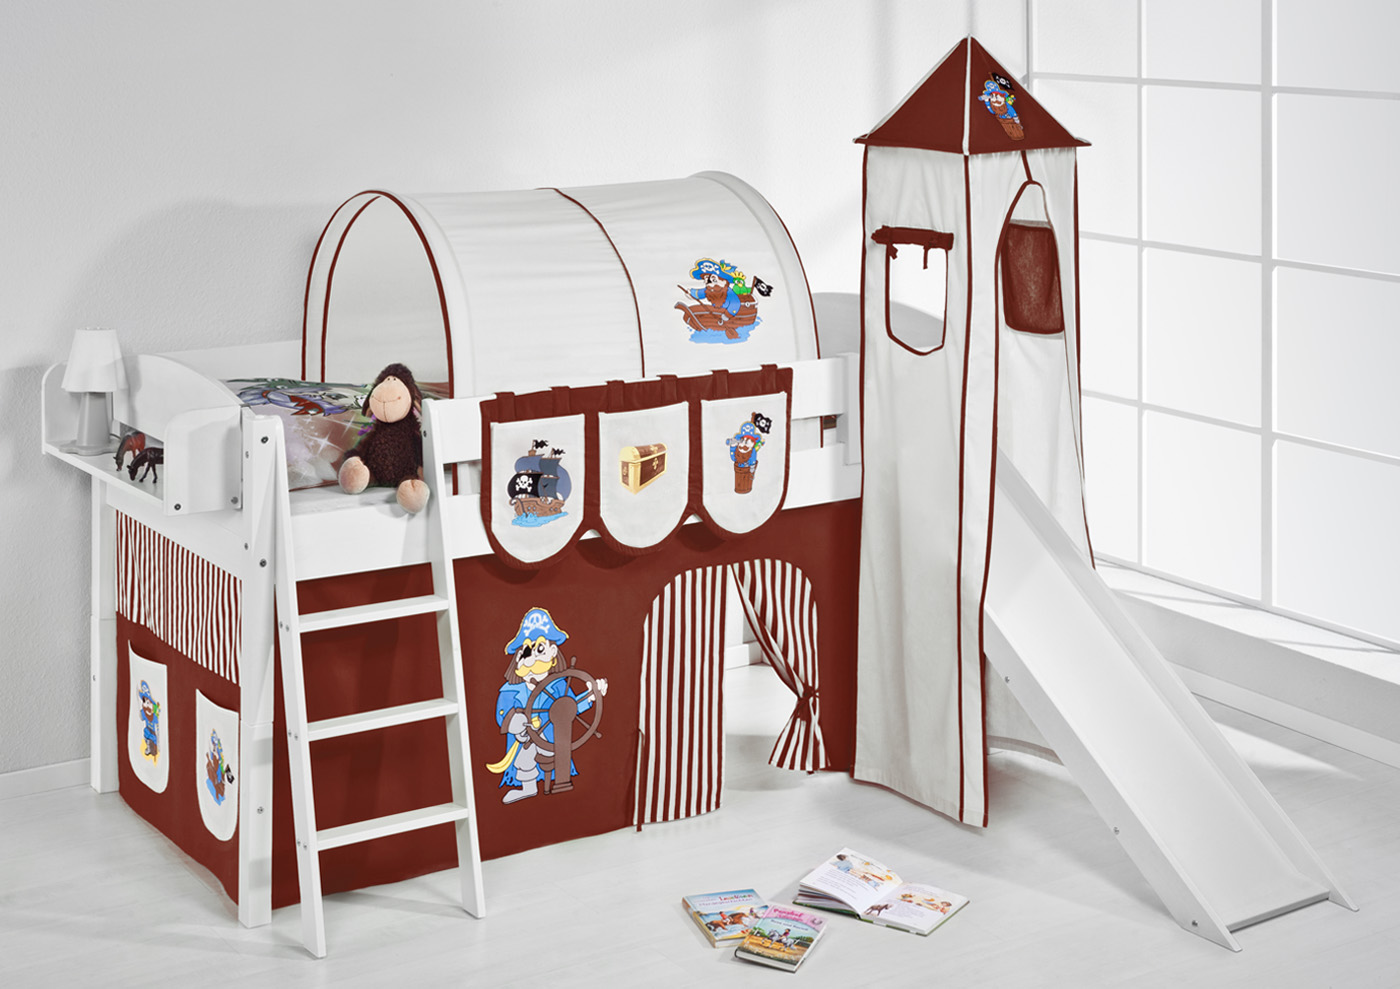 spielbett hochbett kinderbett kinder bett mit turm und rutsche 4105 ebay. Black Bedroom Furniture Sets. Home Design Ideas